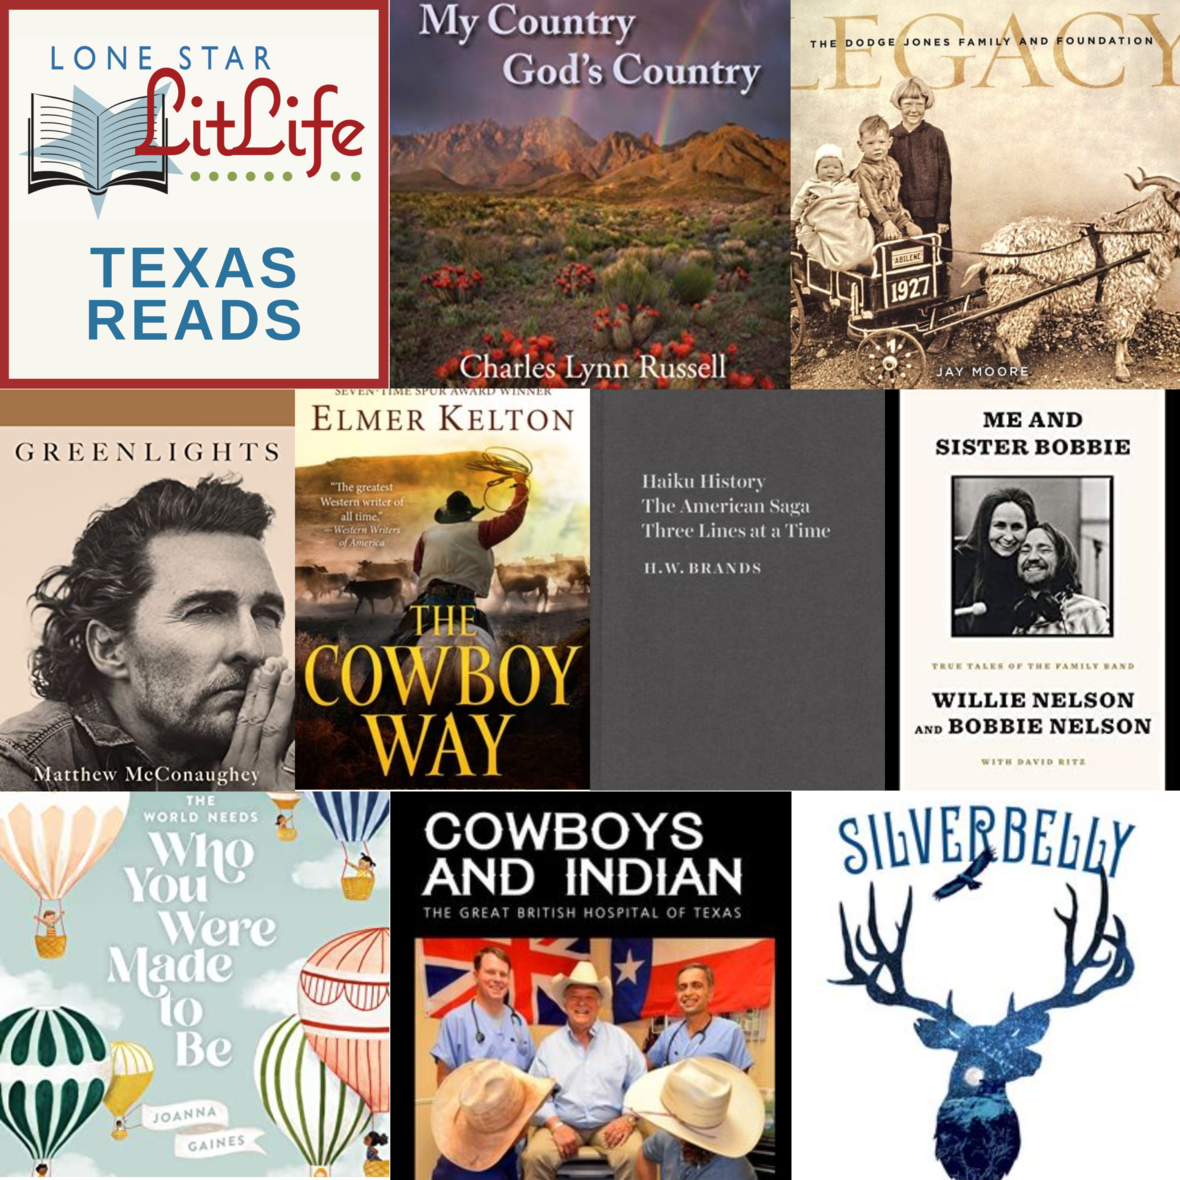 05a Texas Reads Montage